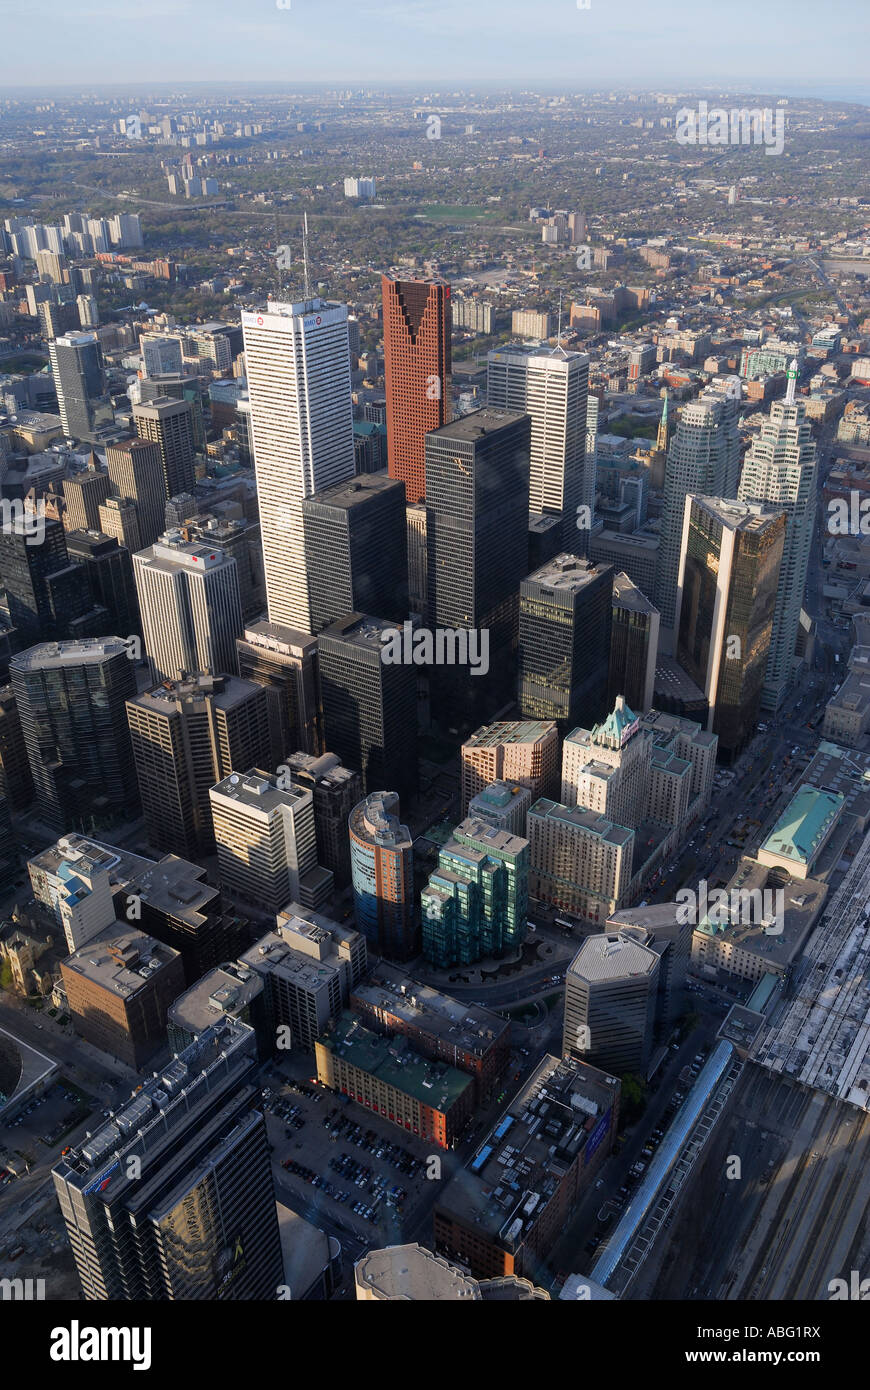 Aerial view of Toronto financial district from the CN tower with horizon at sundown - Stock Image